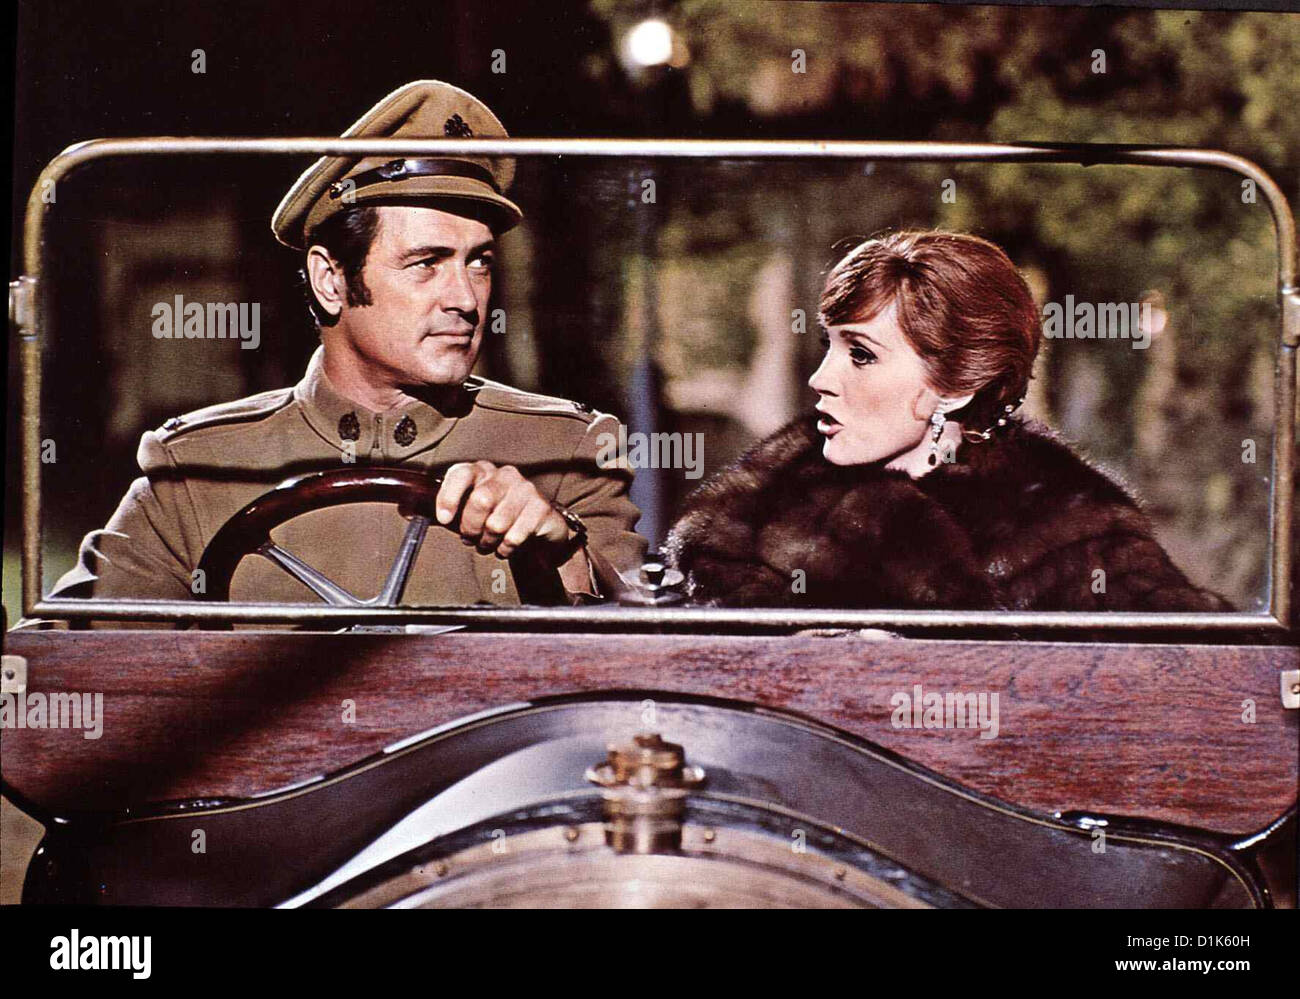 Darling Lili  Darling Lili  Rock Hudson, Julie Andrews Engländerin Lili Smith (Julie Andrews) ist als Spionin - Stock Image